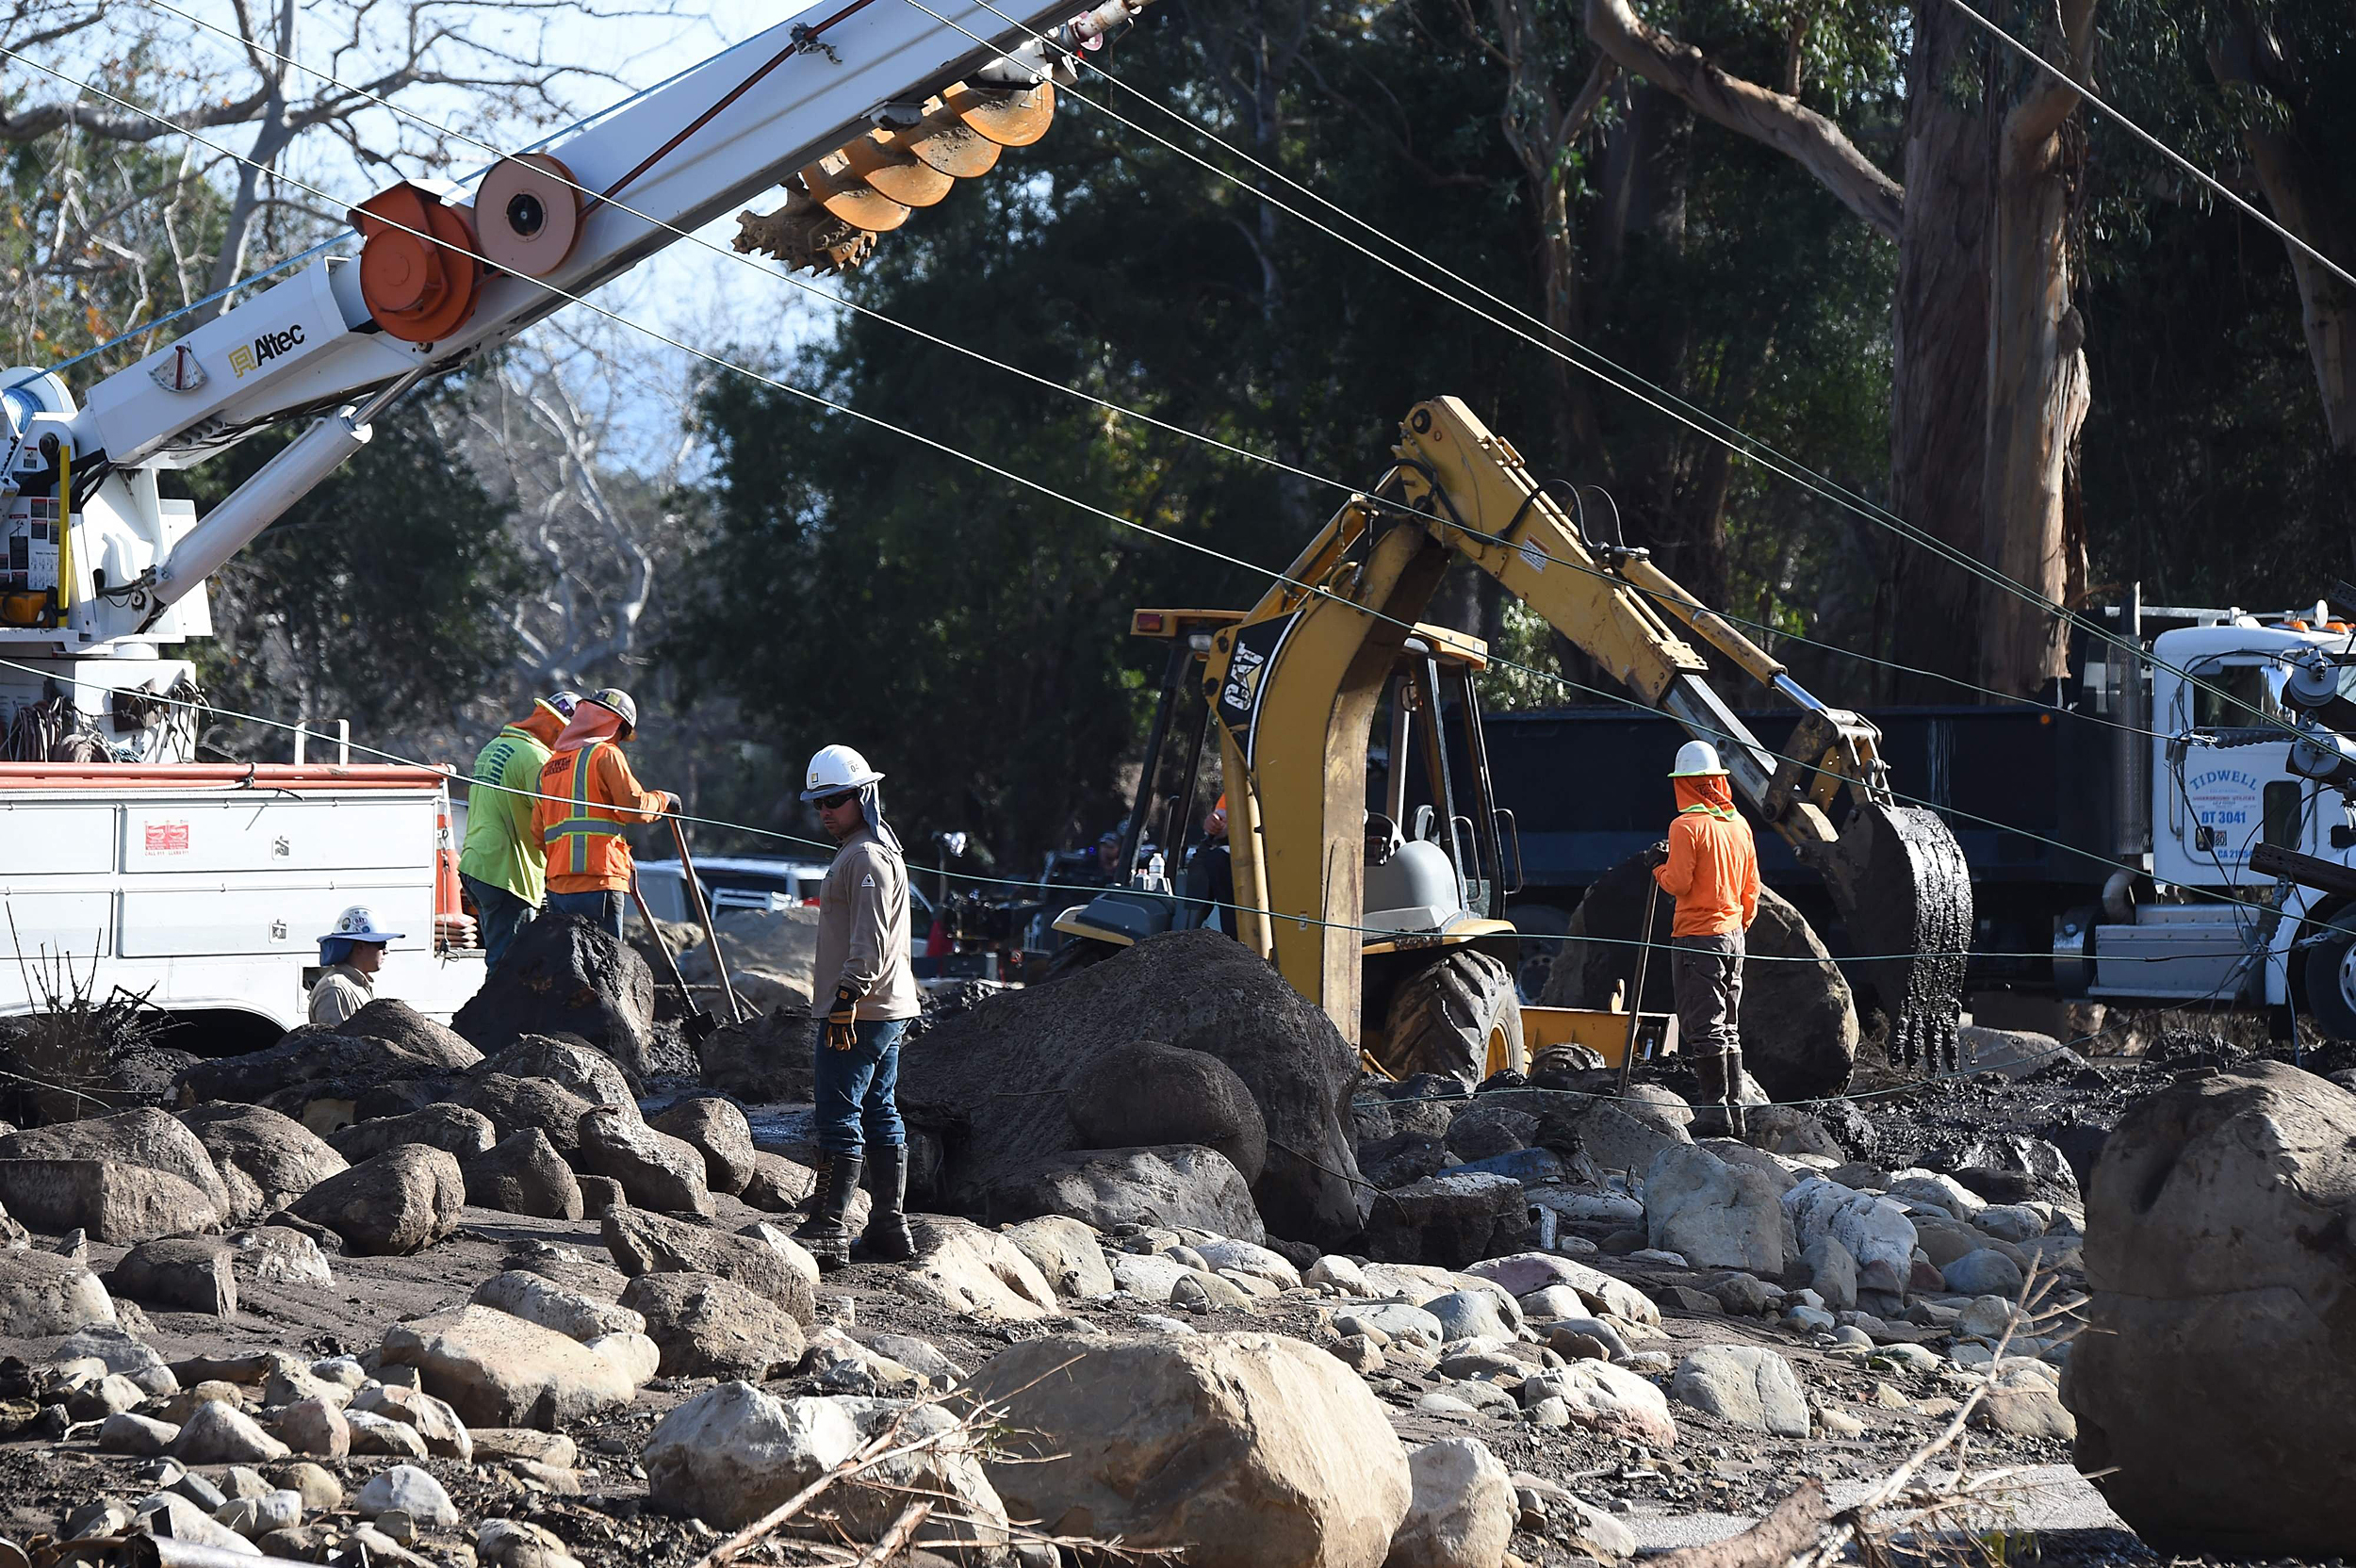 Children among dead in California mudslide, 43 reported missing